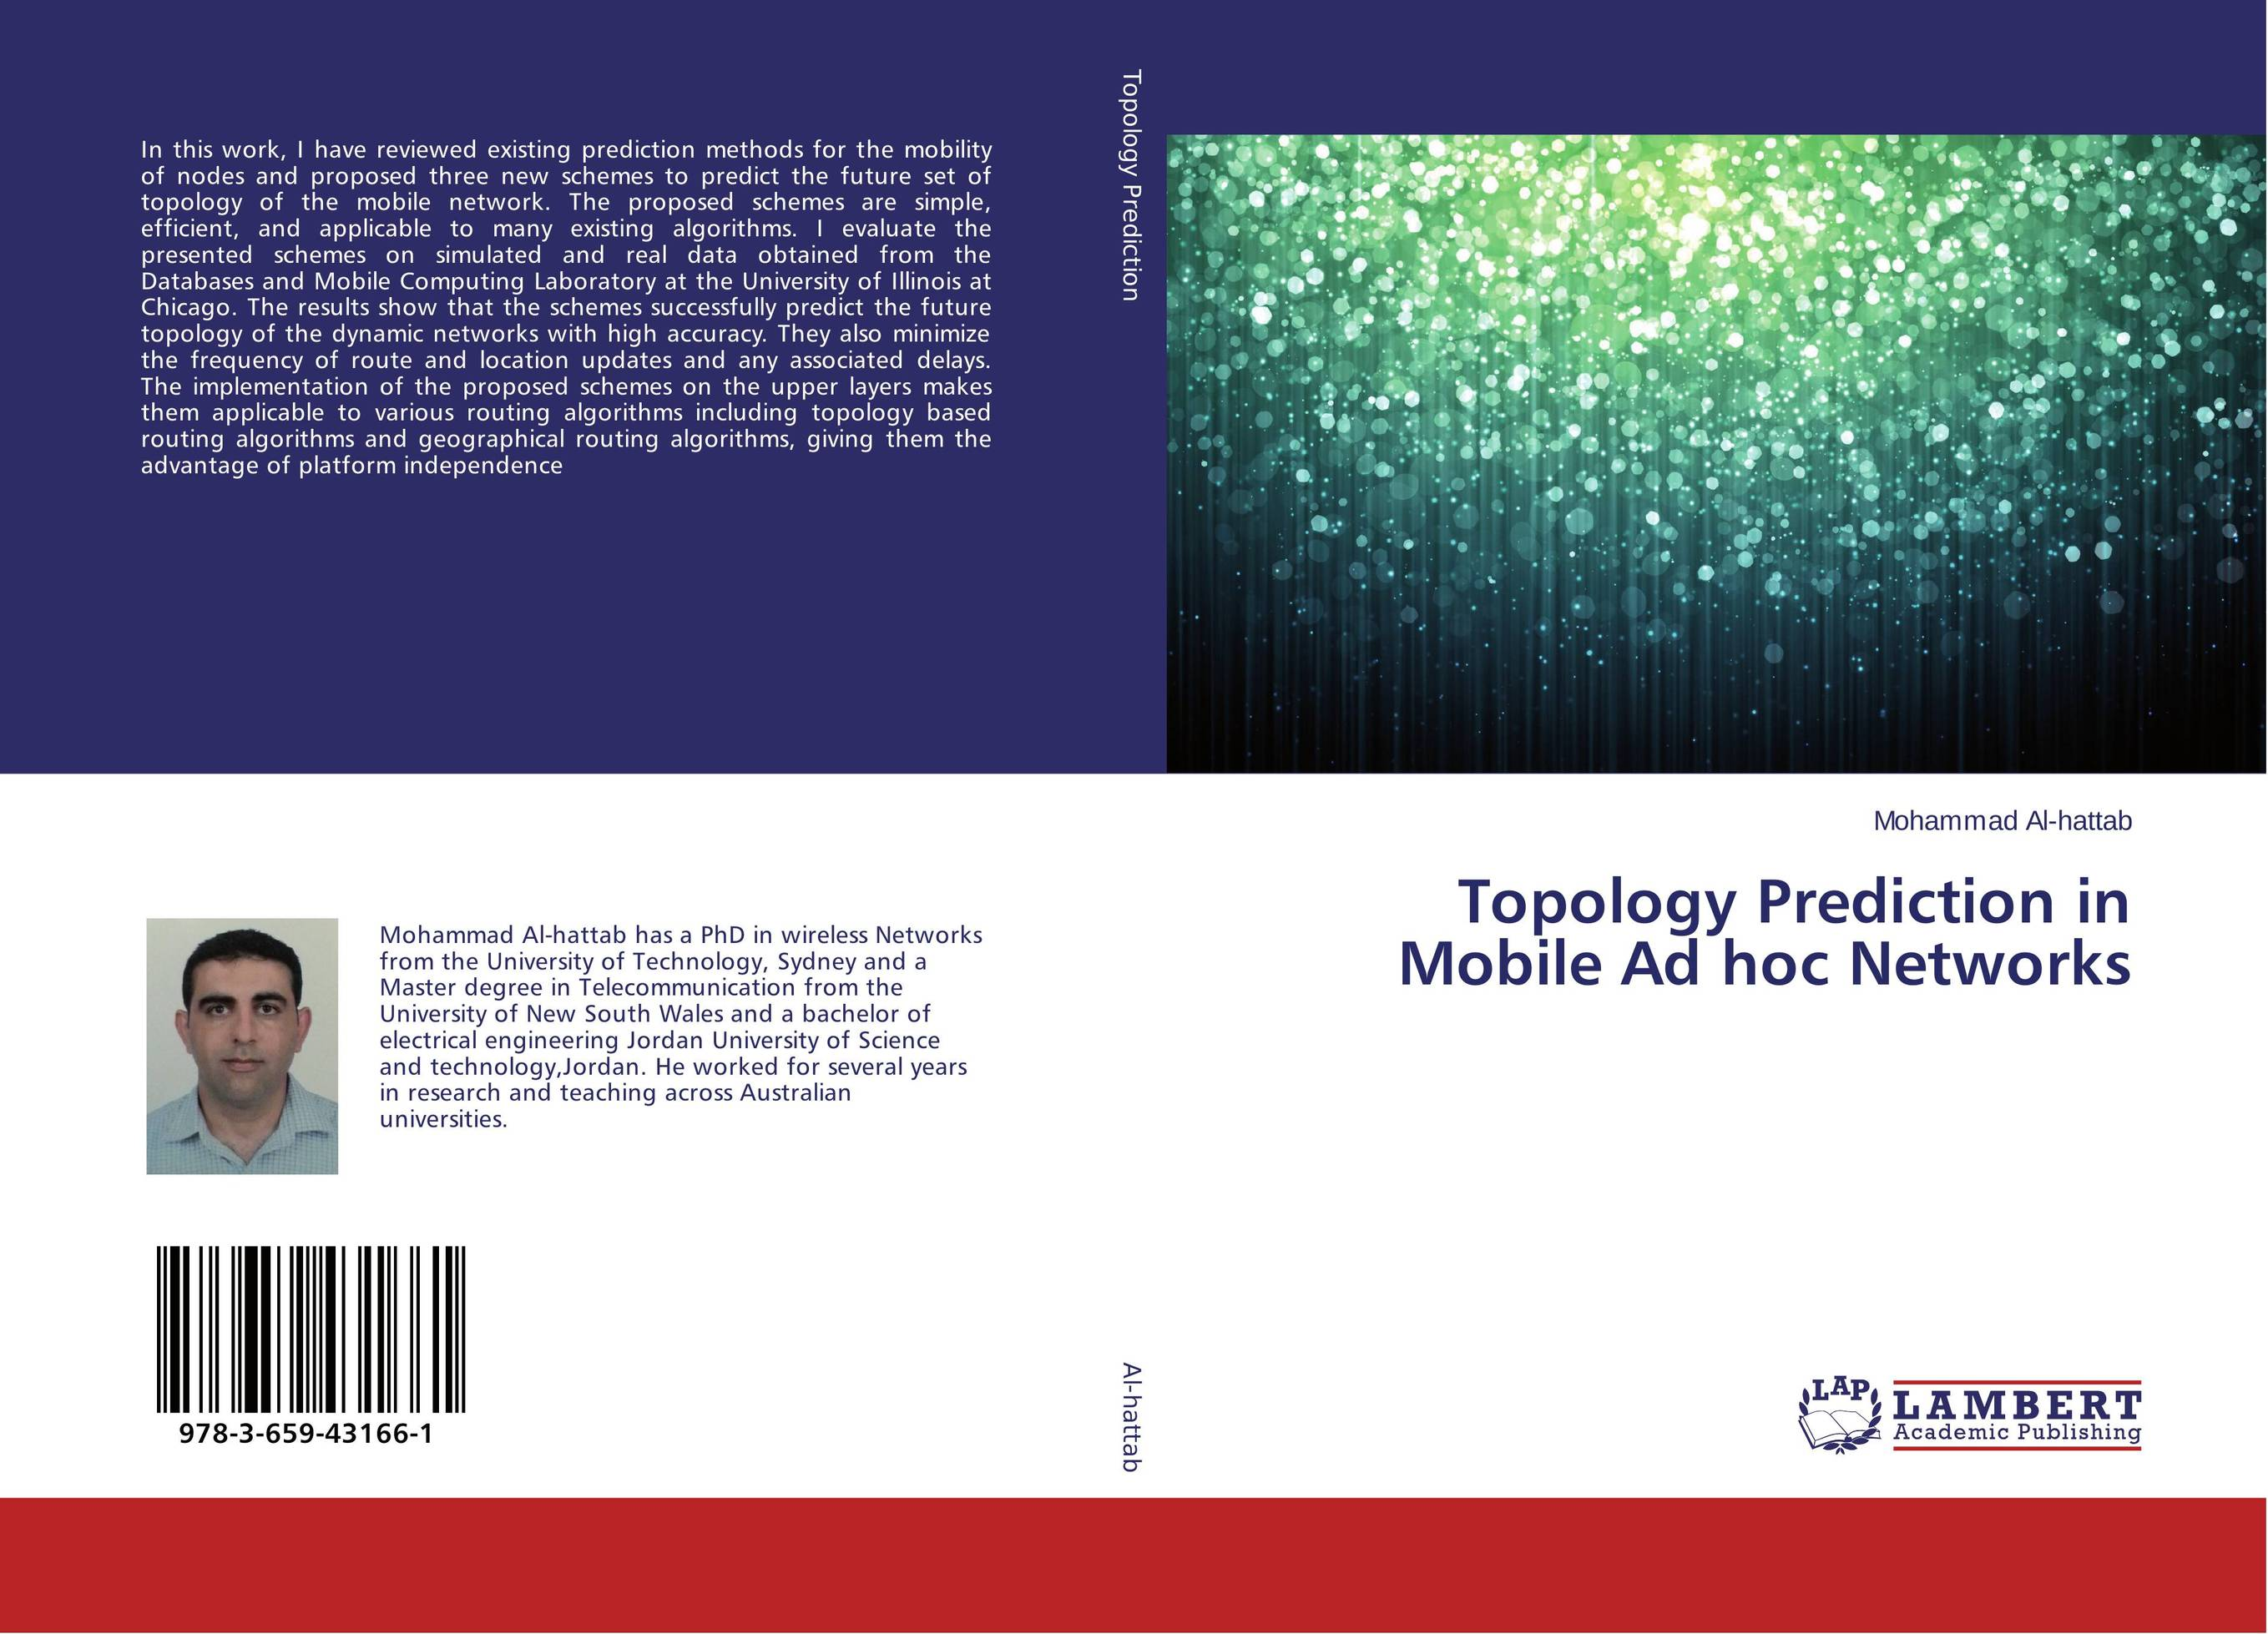 Topology Prediction in Mobile Ad hoc Networks